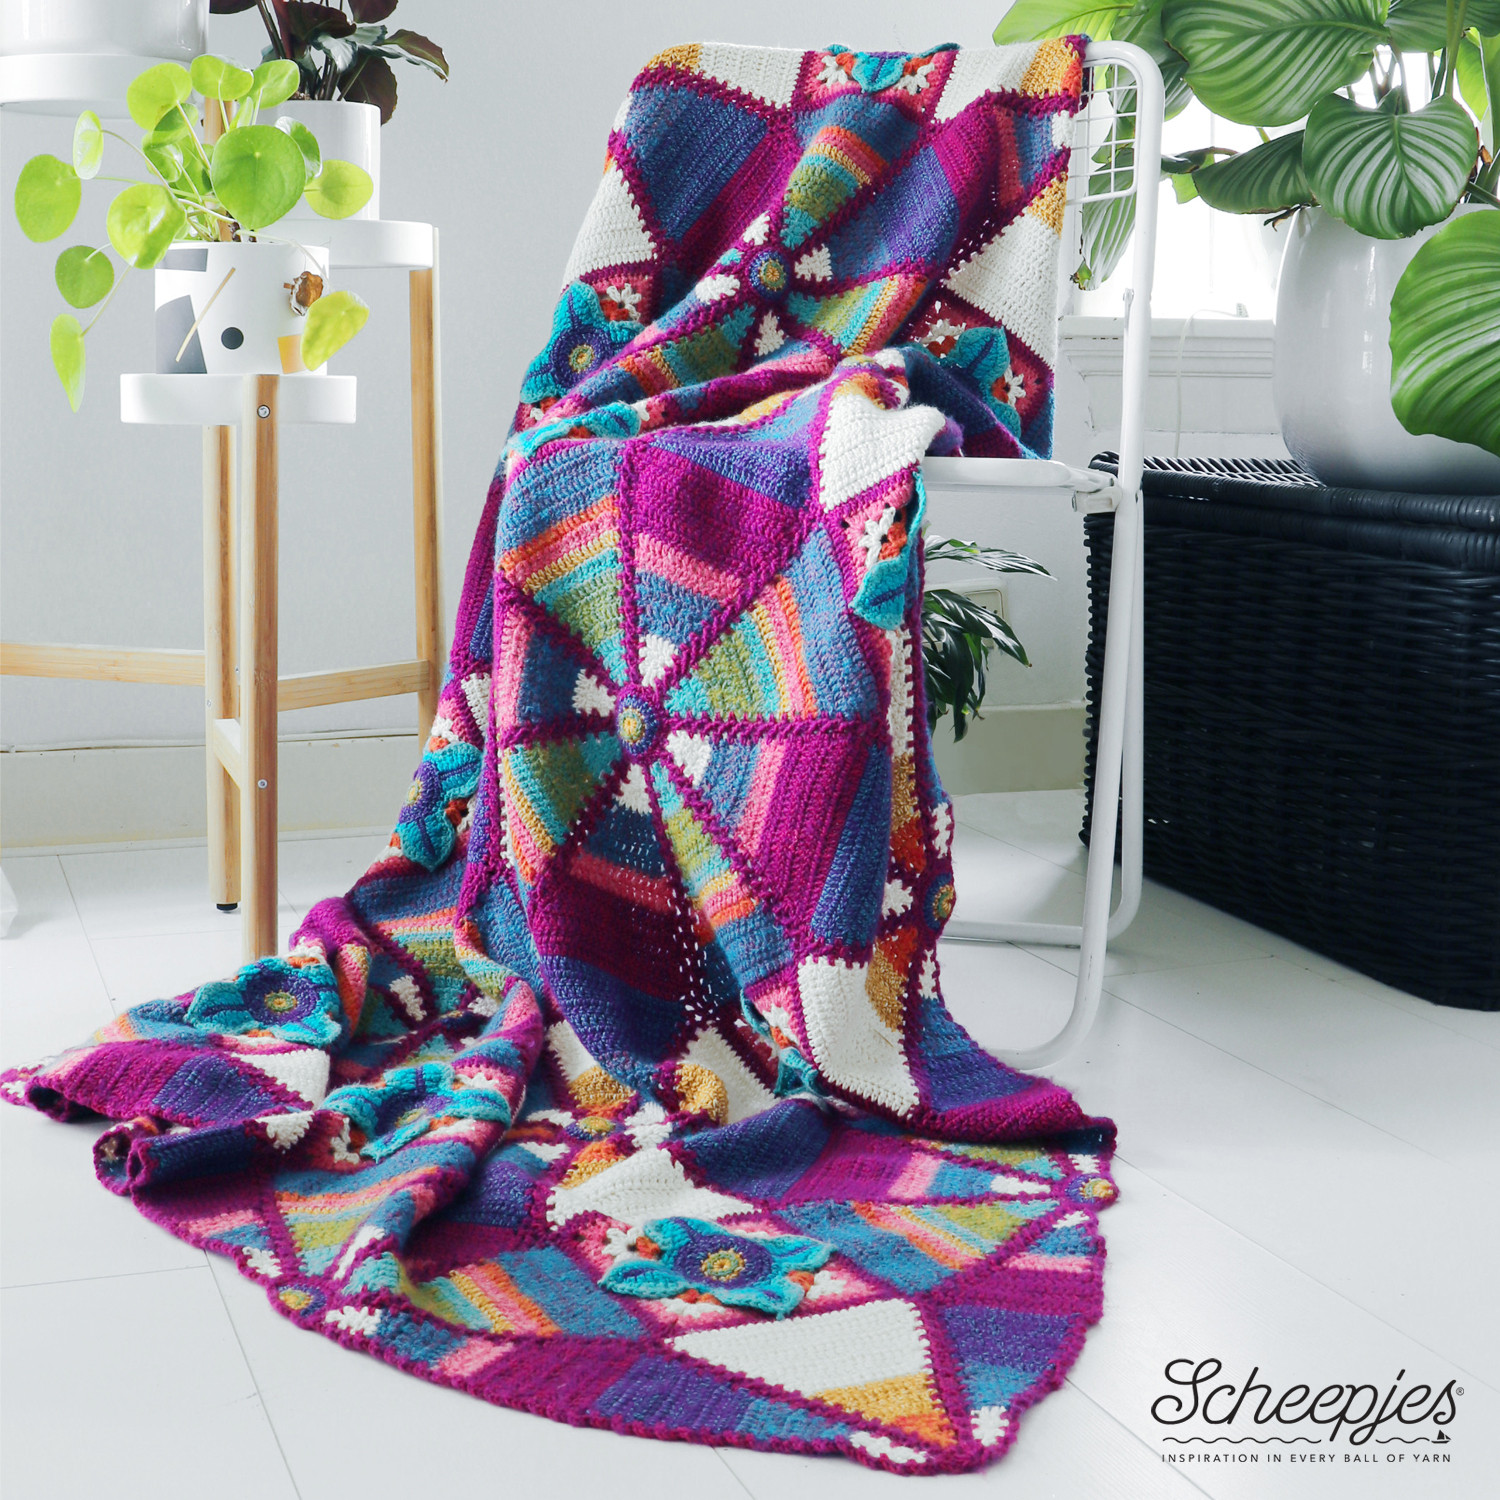 Inspired by Janie Crow's Trips to India: Scheepjes Royal Garden Blankets Are Now in Stock!